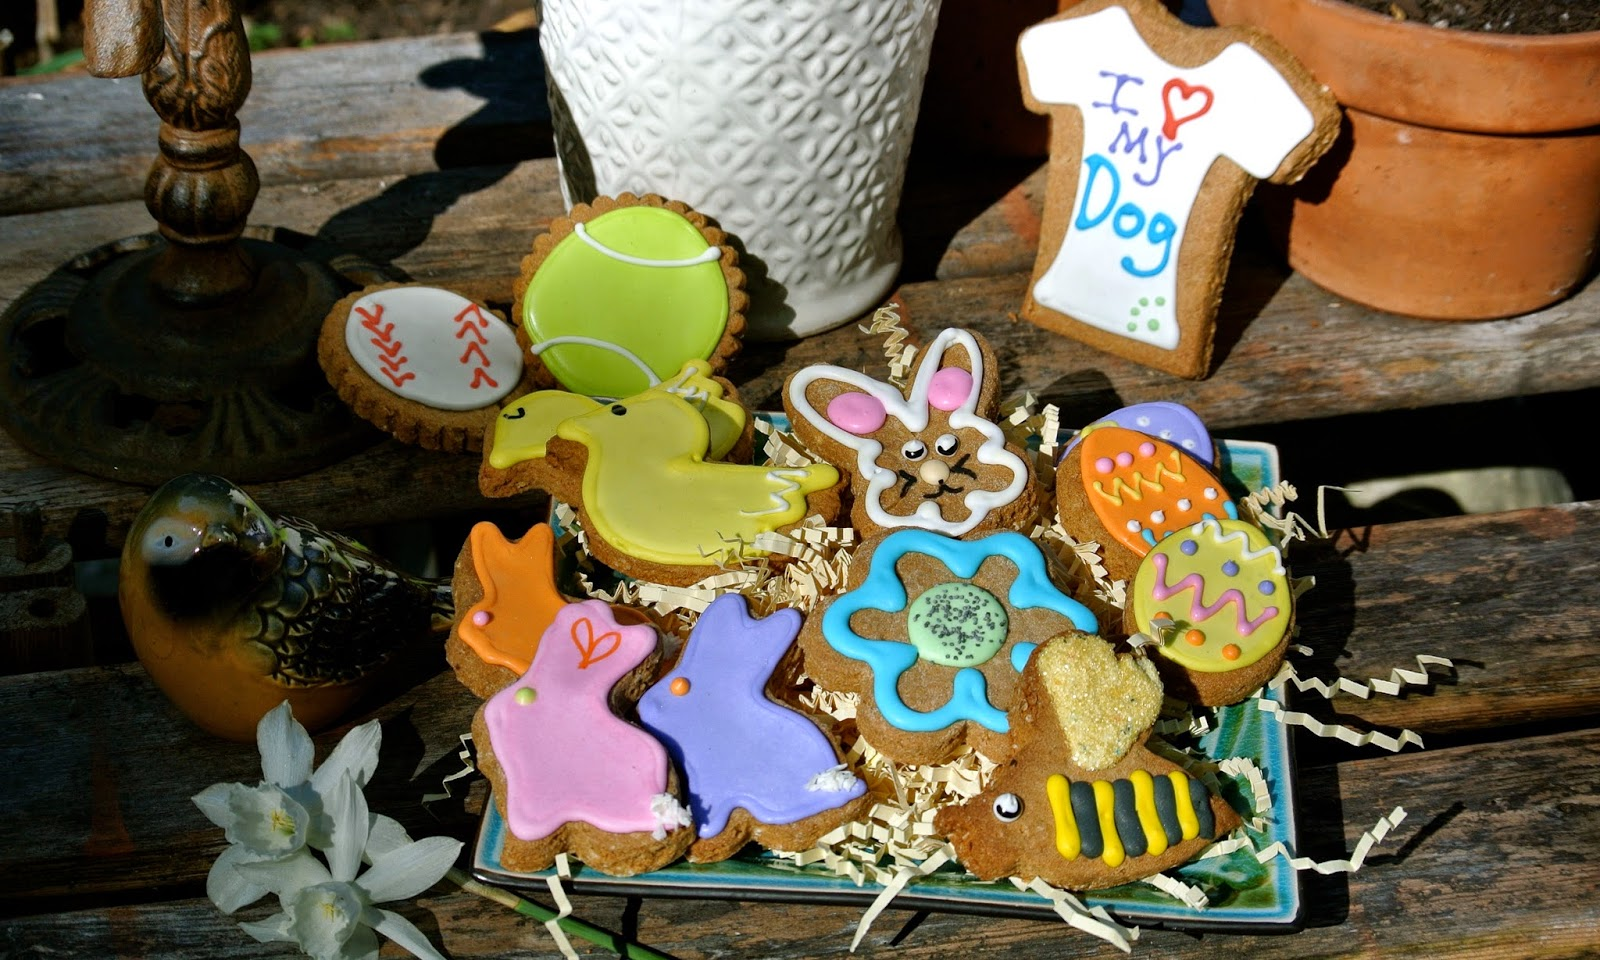 Ma Snax Dog Treats Easter Cookie Assortment